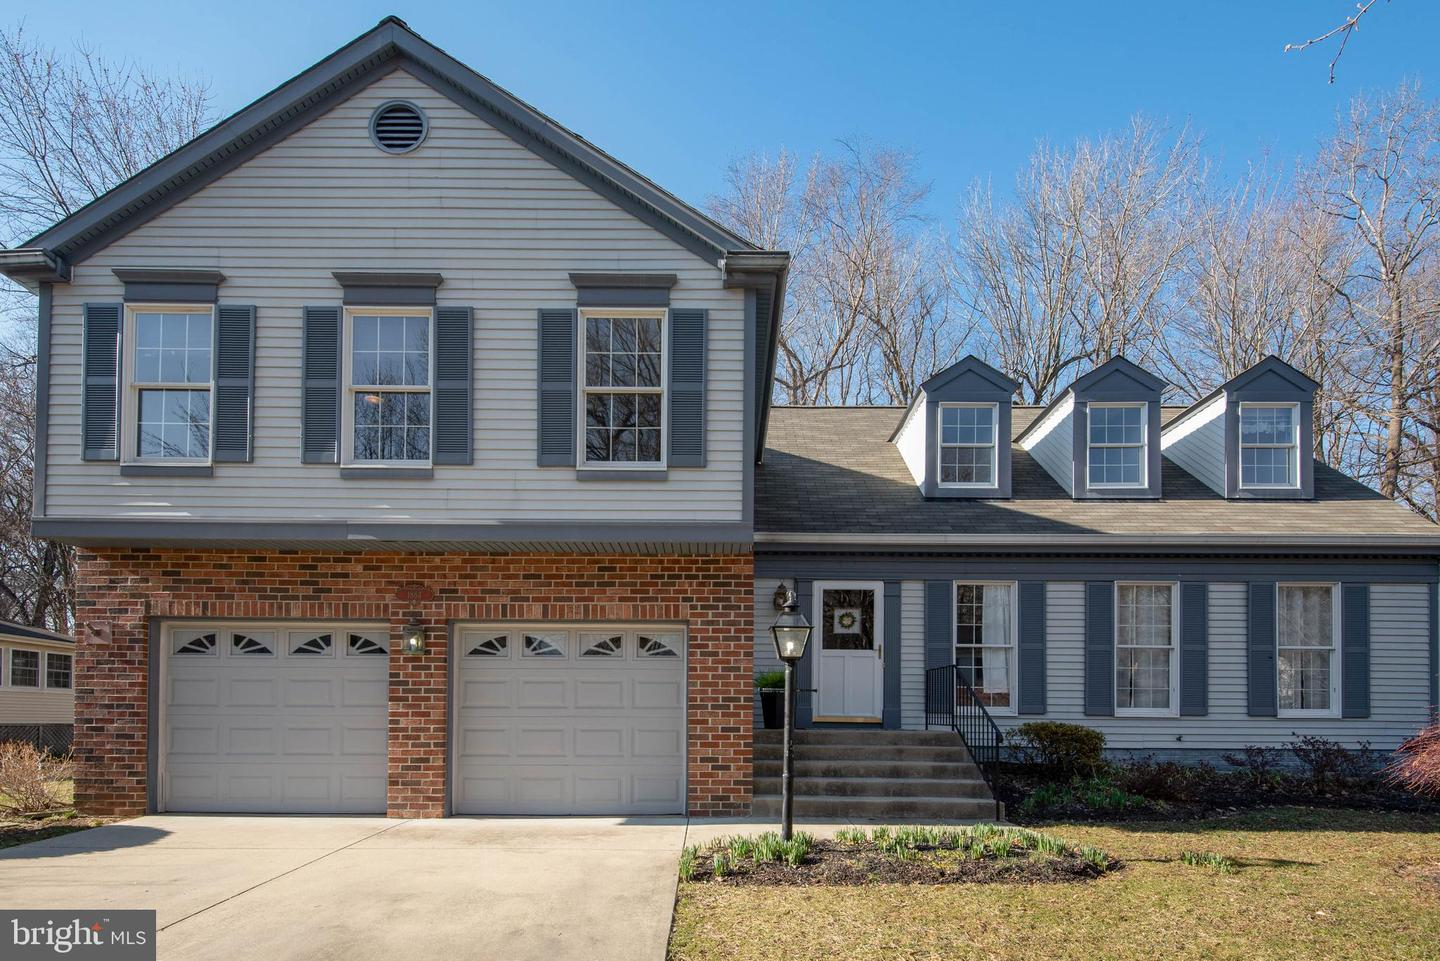 Single Family Home for Sale at 1864 Neumann Way 1864 Neumann Way Crofton, Maryland 21114 United States